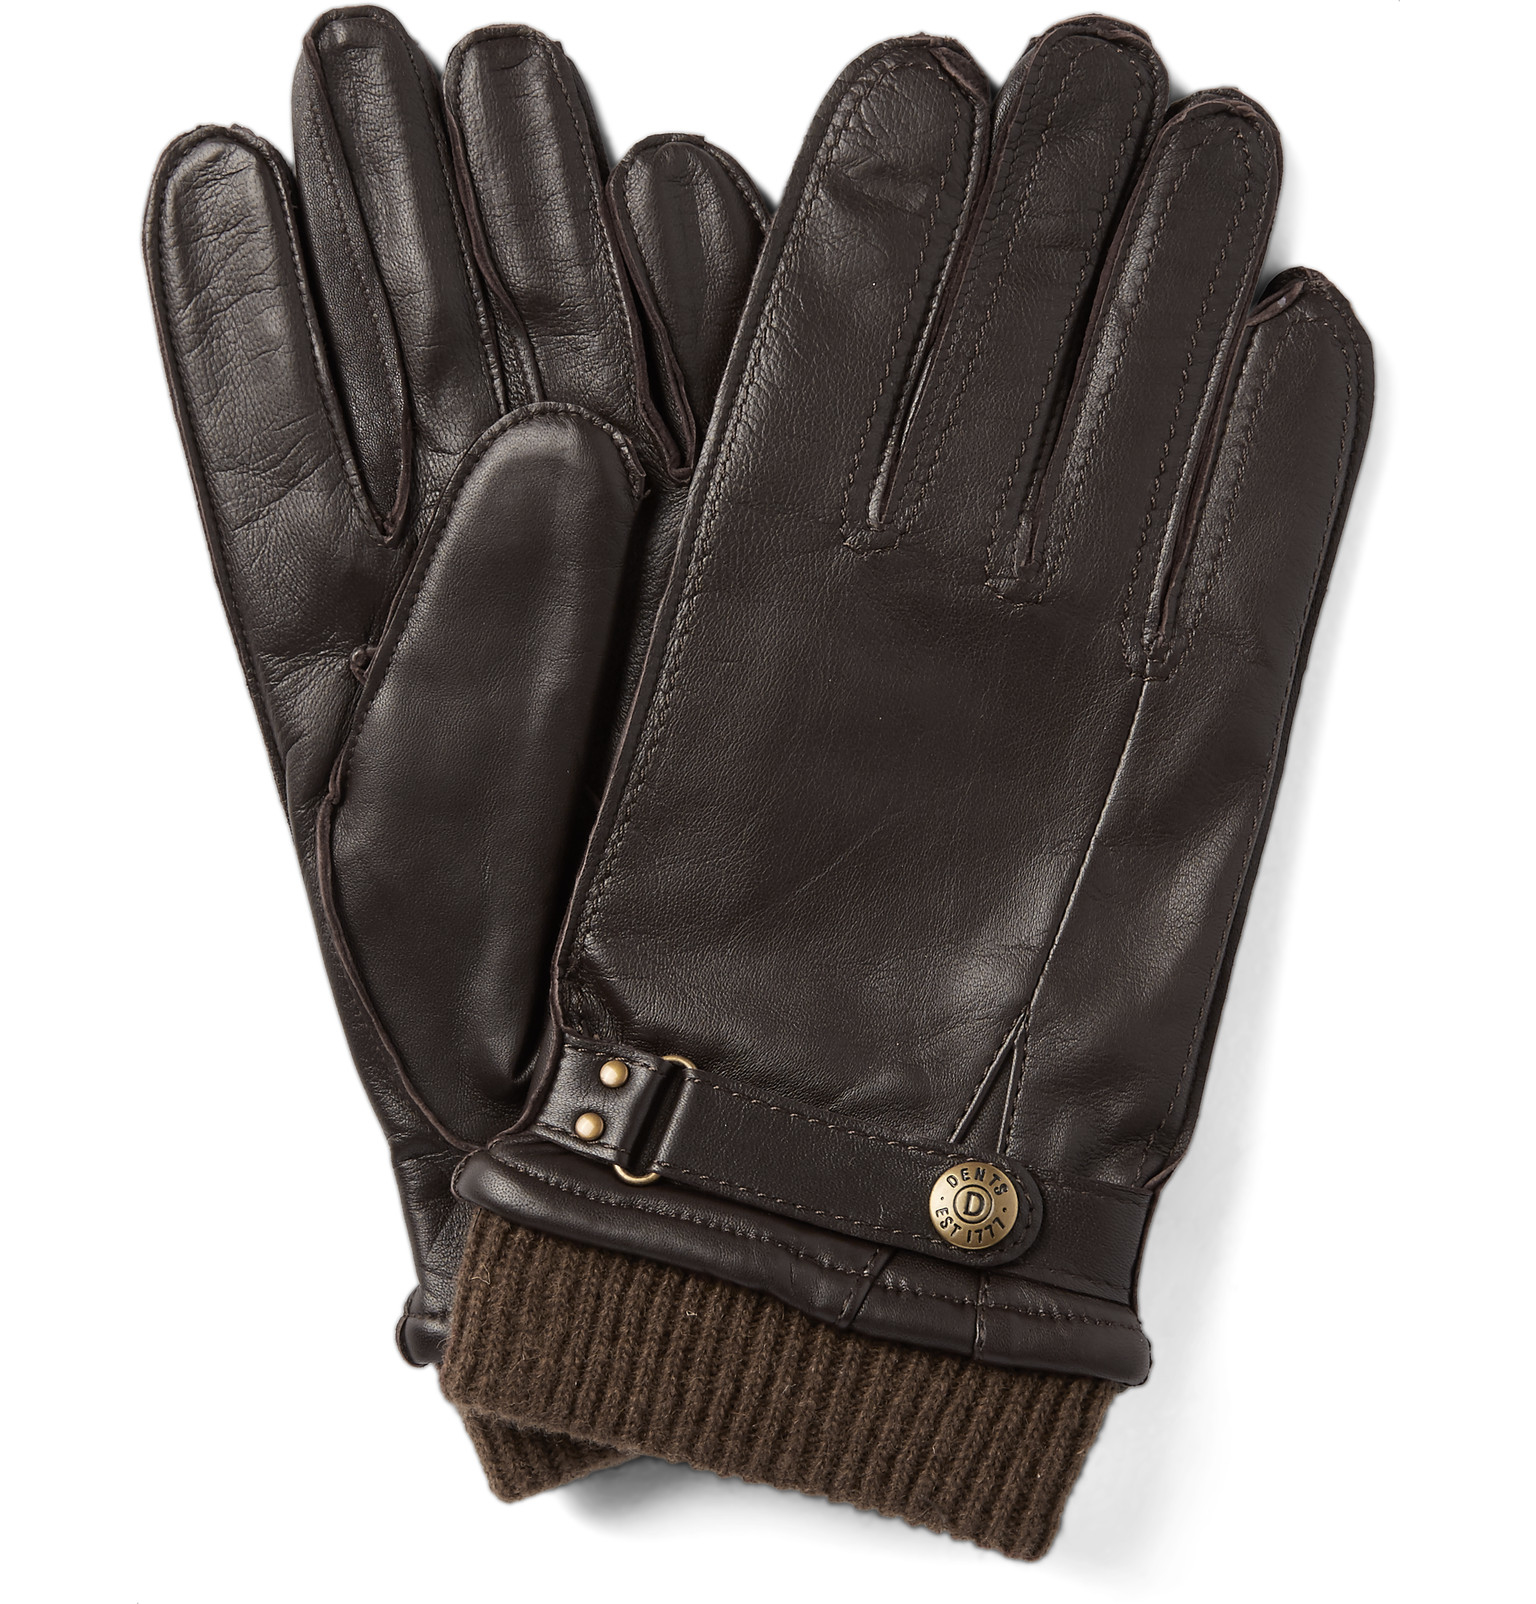 Mens leather gloves dents - Gallery Download Image Mens Leather Gloves Dents